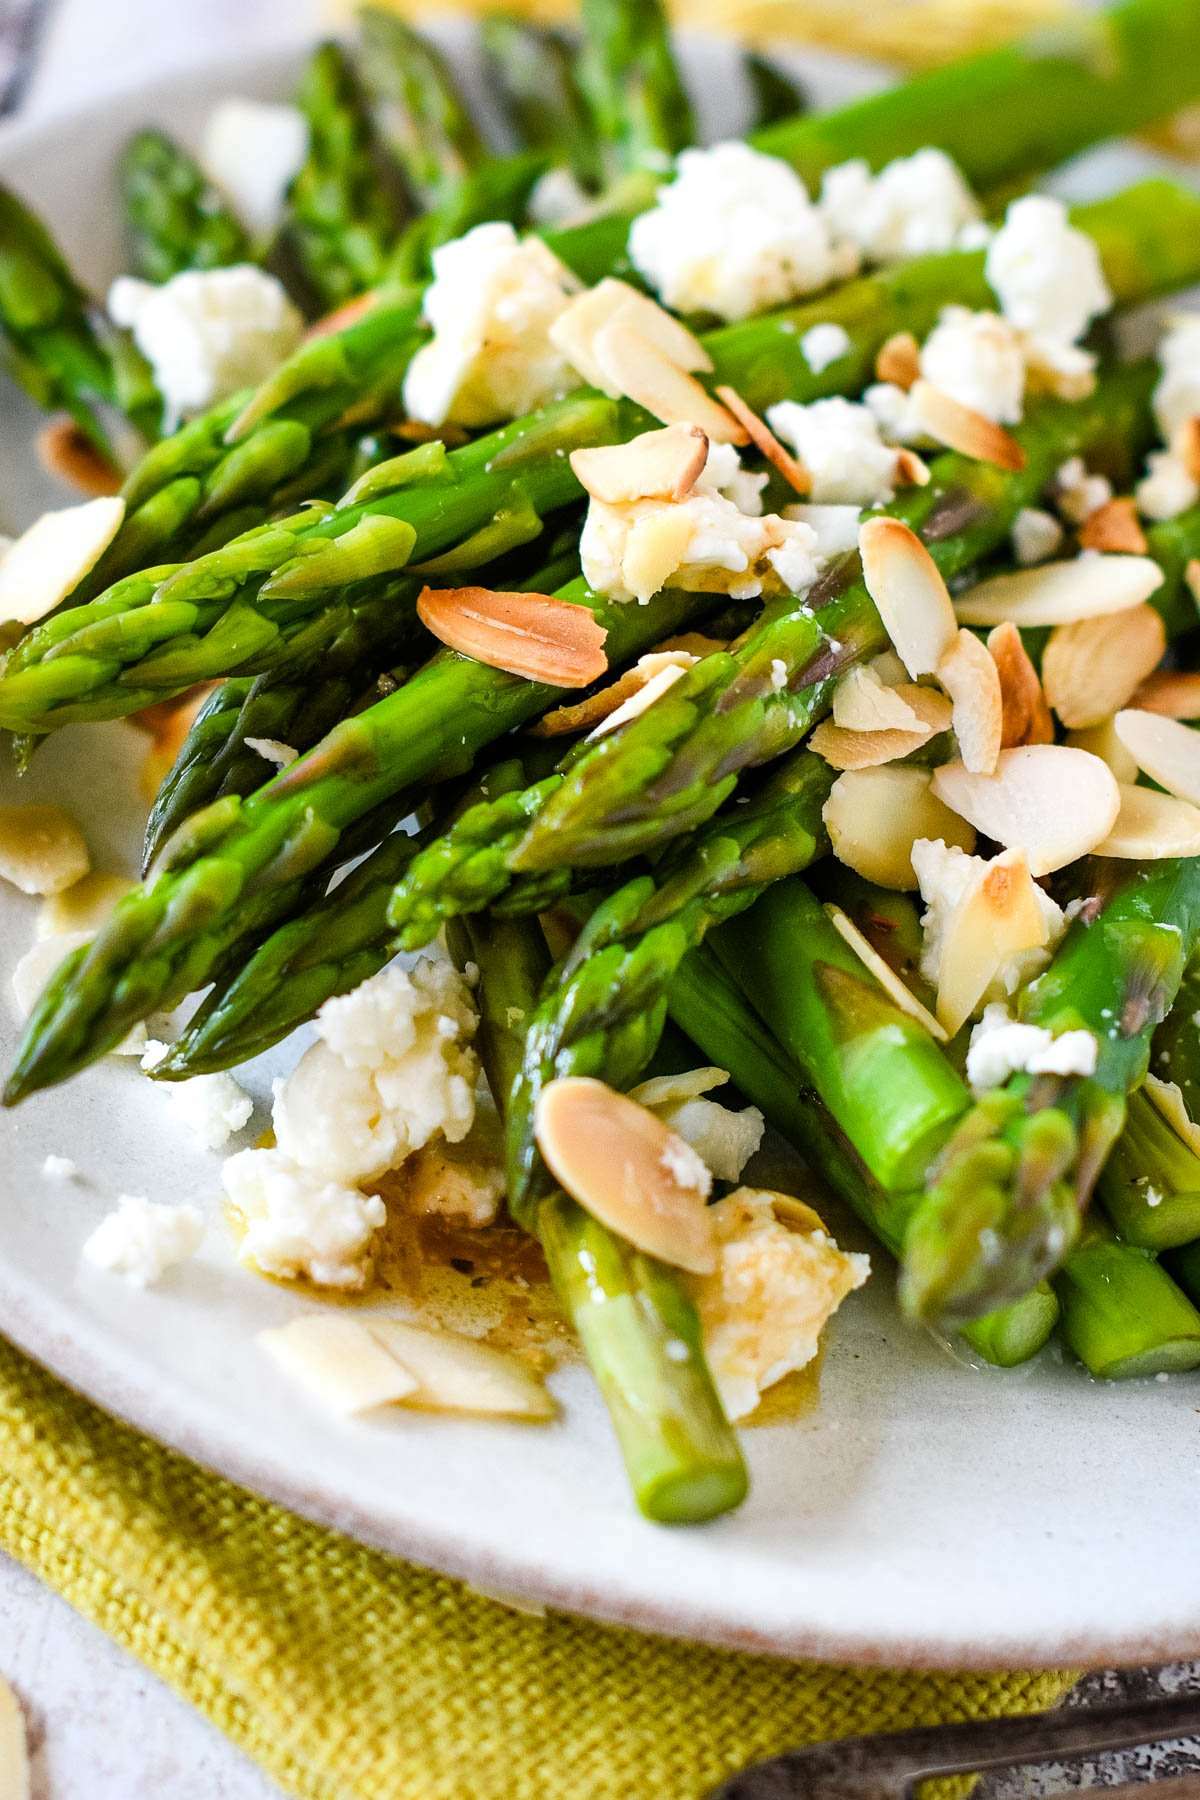 close up of finished dish of asparagus, feta and almonds